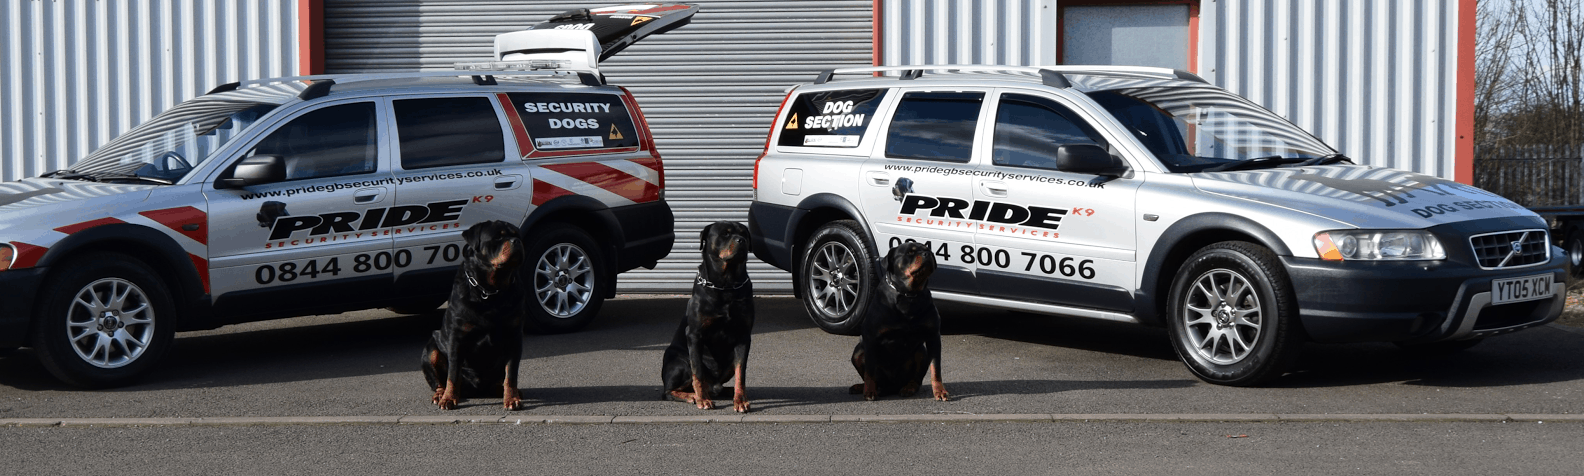 pride gb security dogs